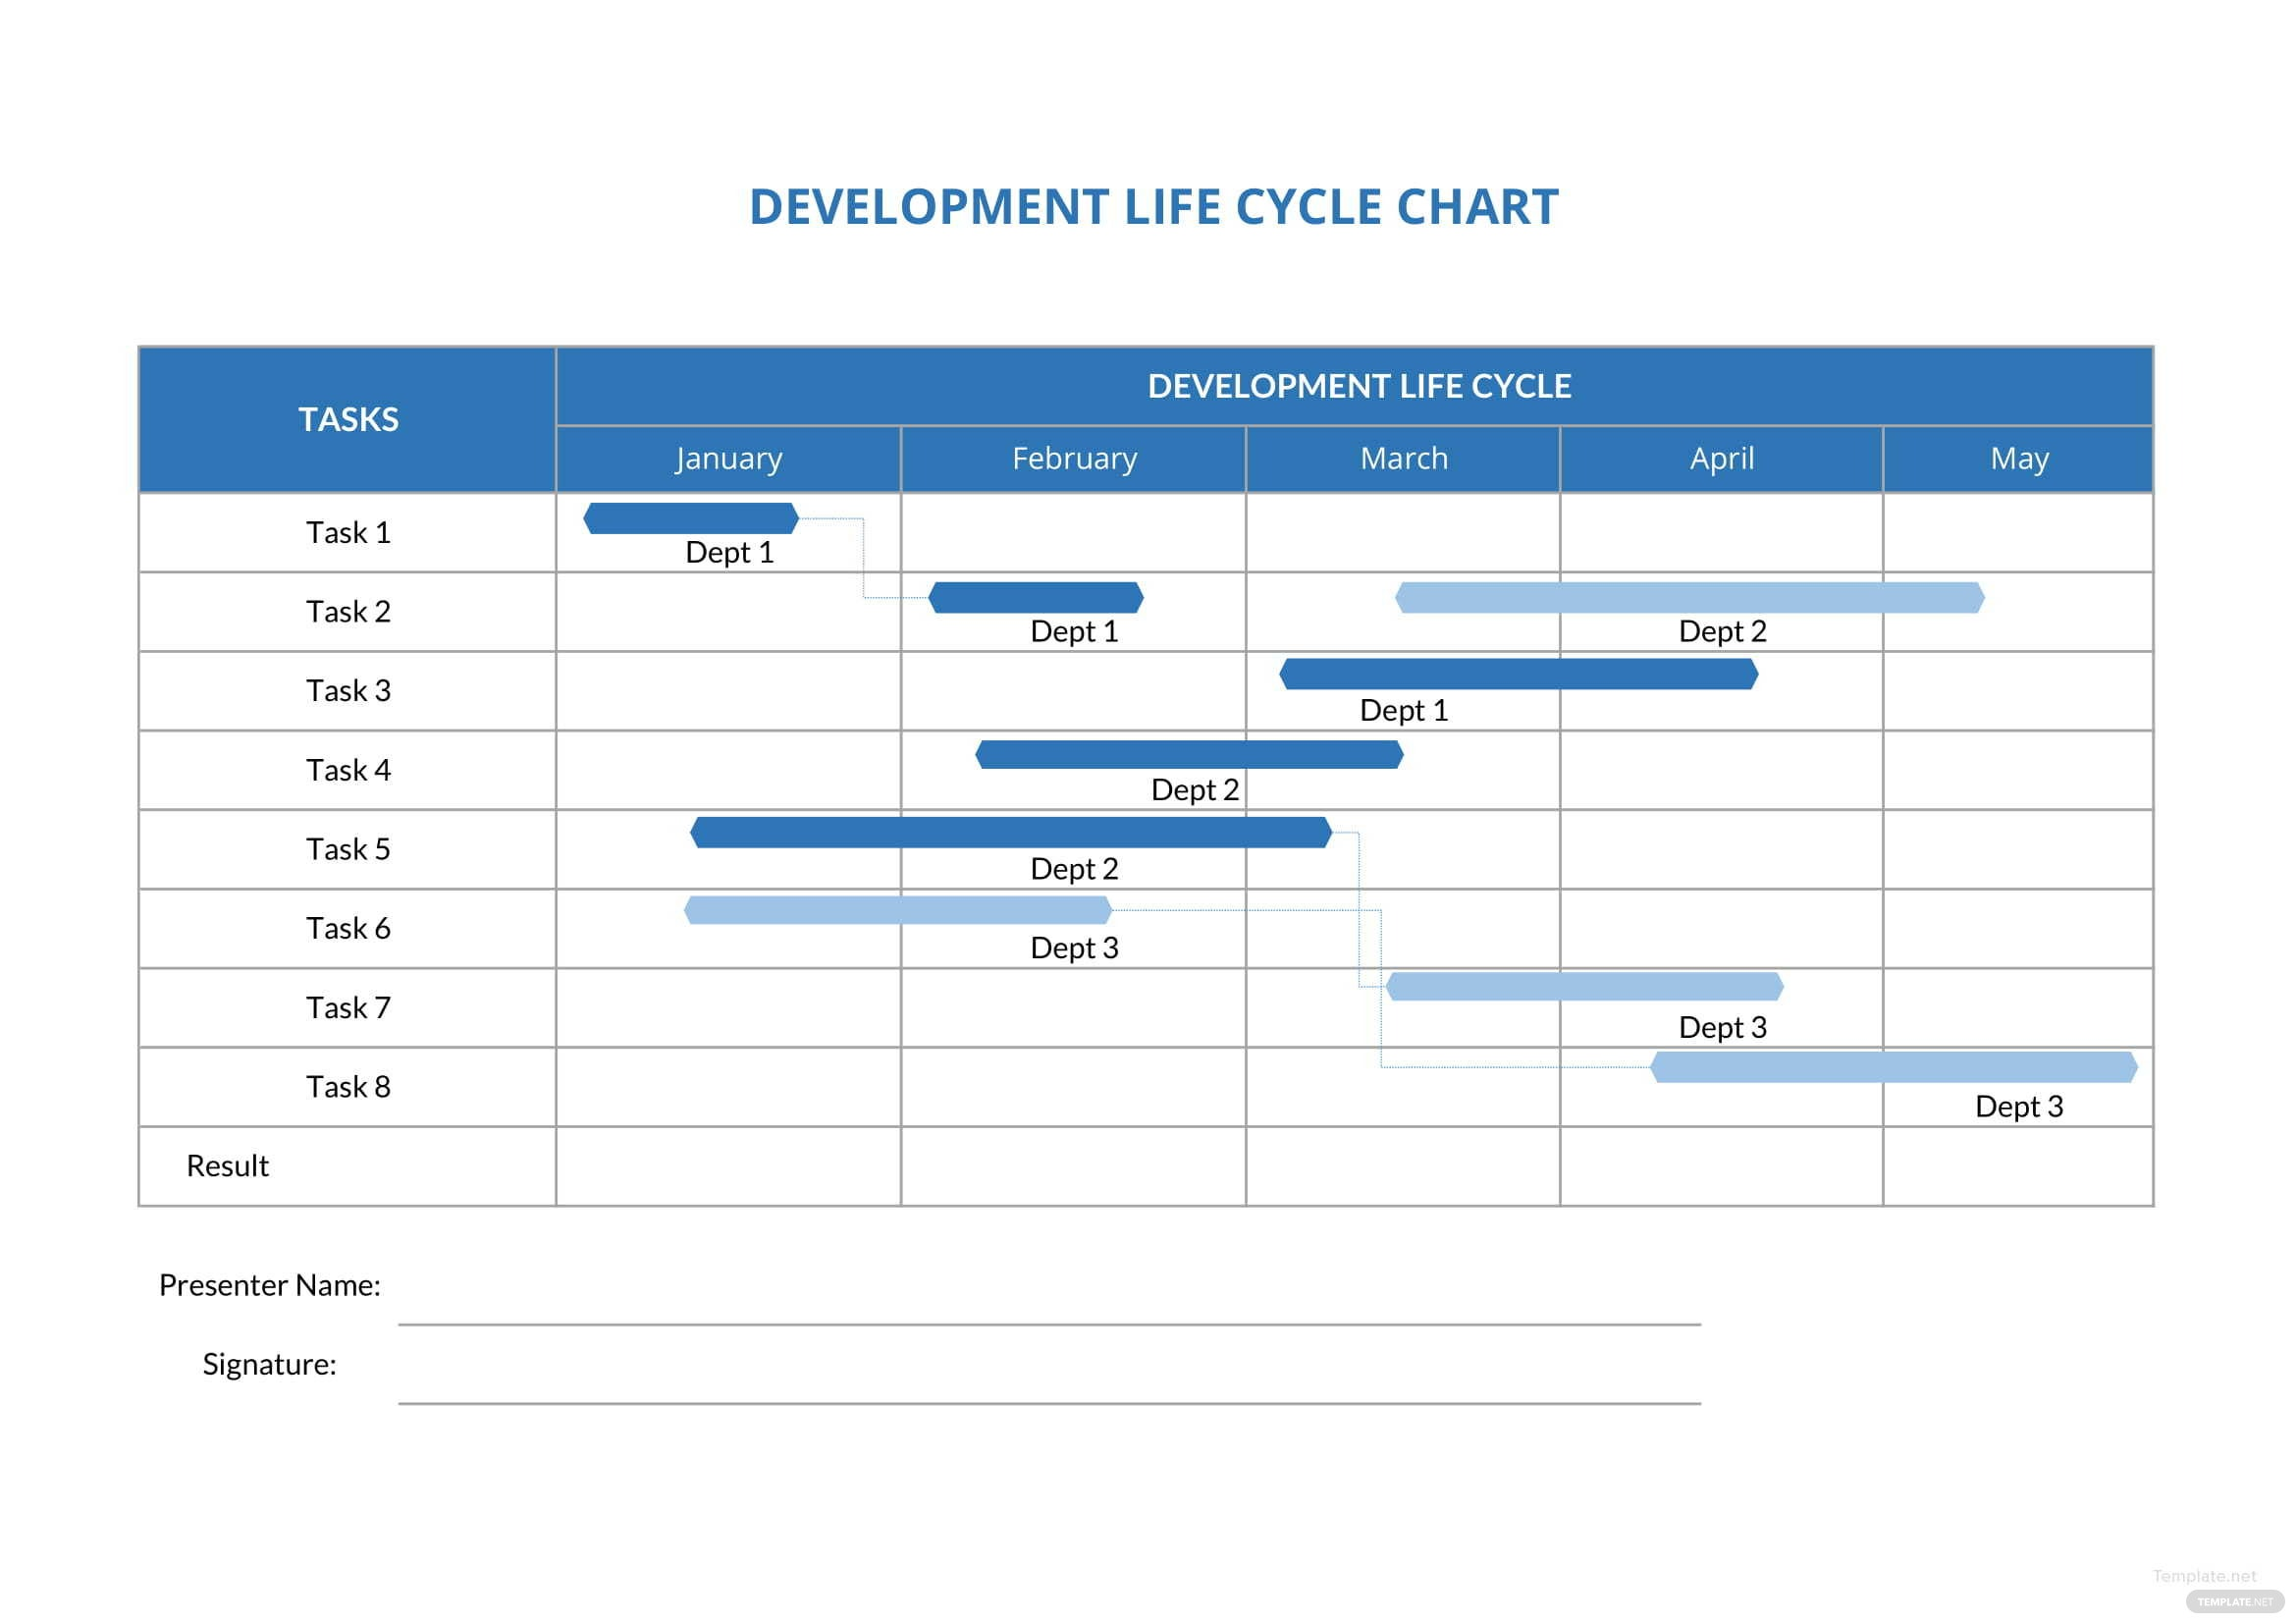 developing life cycle chart template in microsoft word  excel  apple pages  numbers